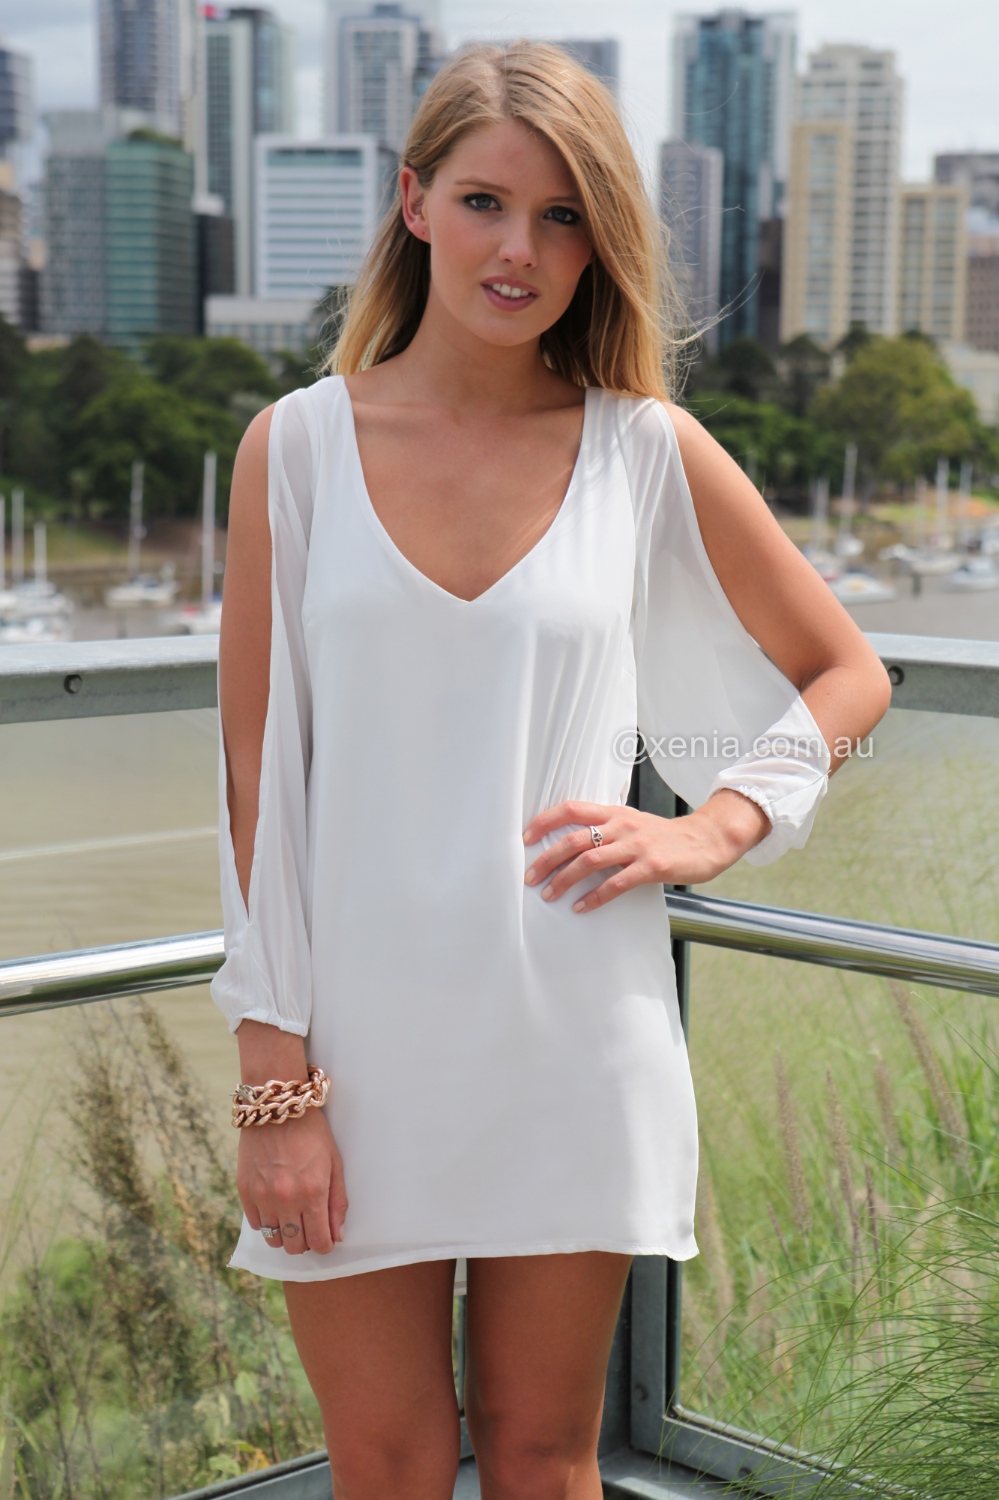 BILLOWING DRESS , DRESSES, TOPS, BOTTOMS, JACKETS & JUMPERS, ACCESSORIES, SALE NOTHING OVER $25, PRE ORDER, NEW ARRIVALS, PLAYSUIT, GIFT VOUCHER,,White Australia, Queensland, Brisbane